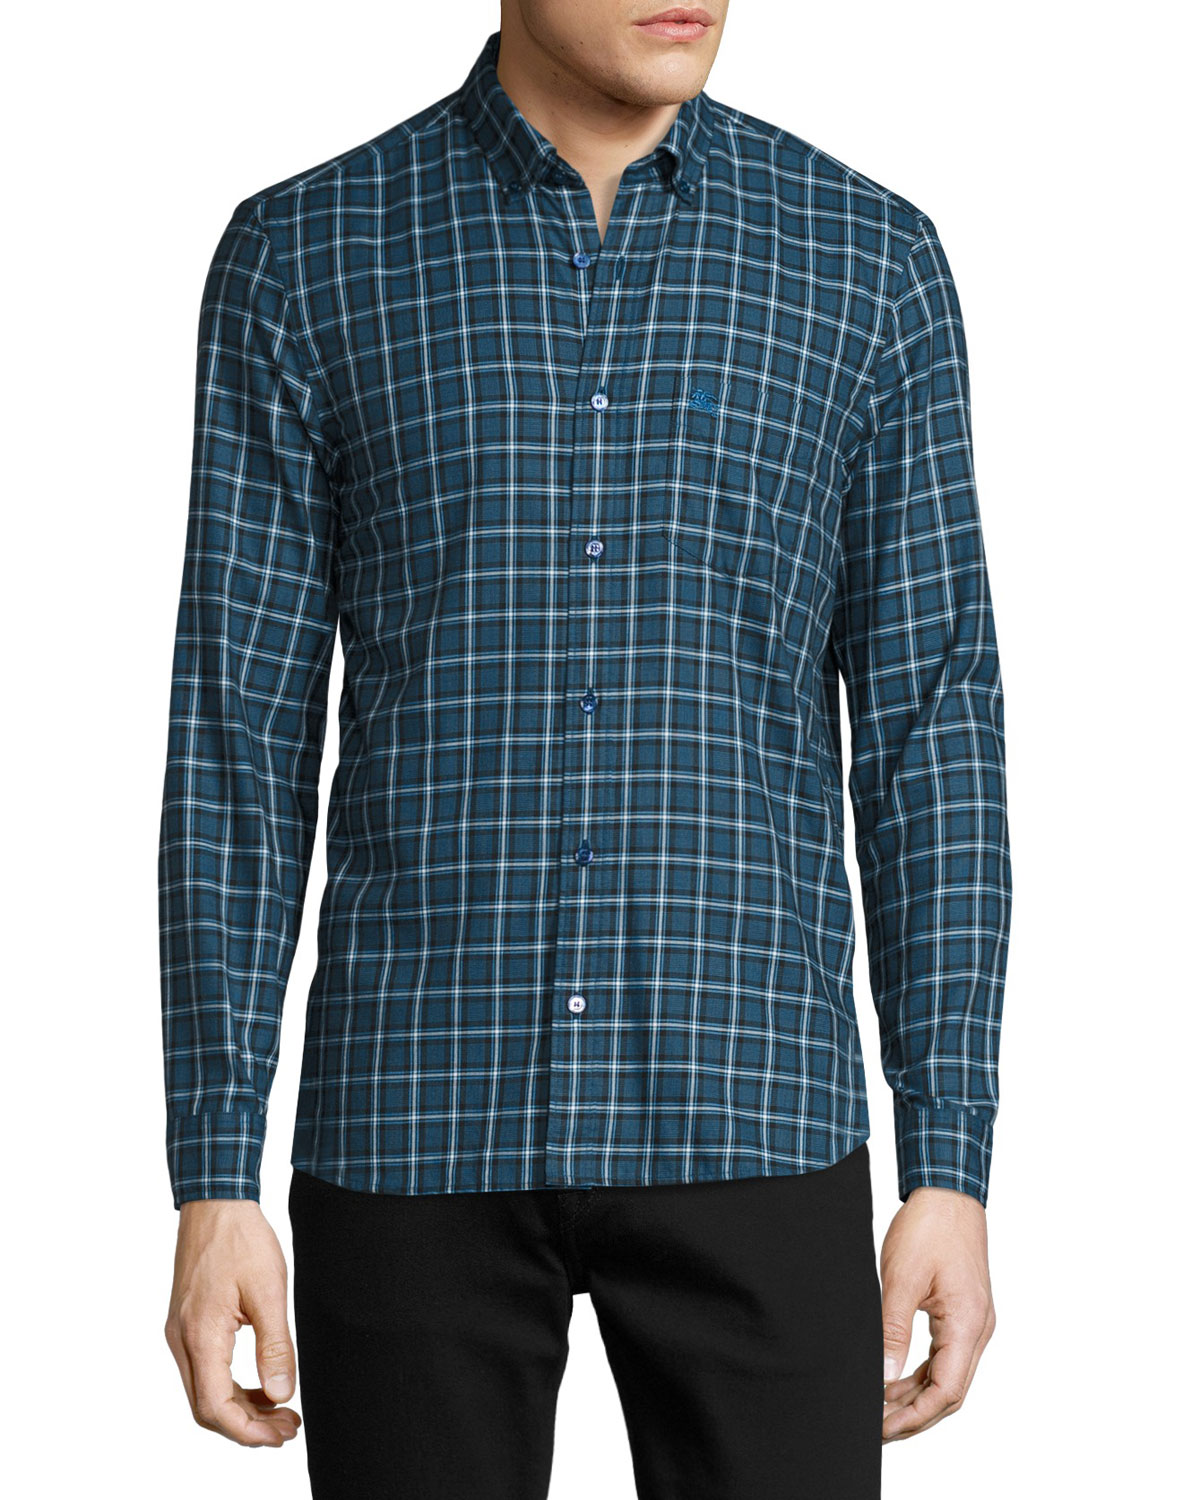 Scotson Tartan Cotton Twill Shirt, Bright Navy